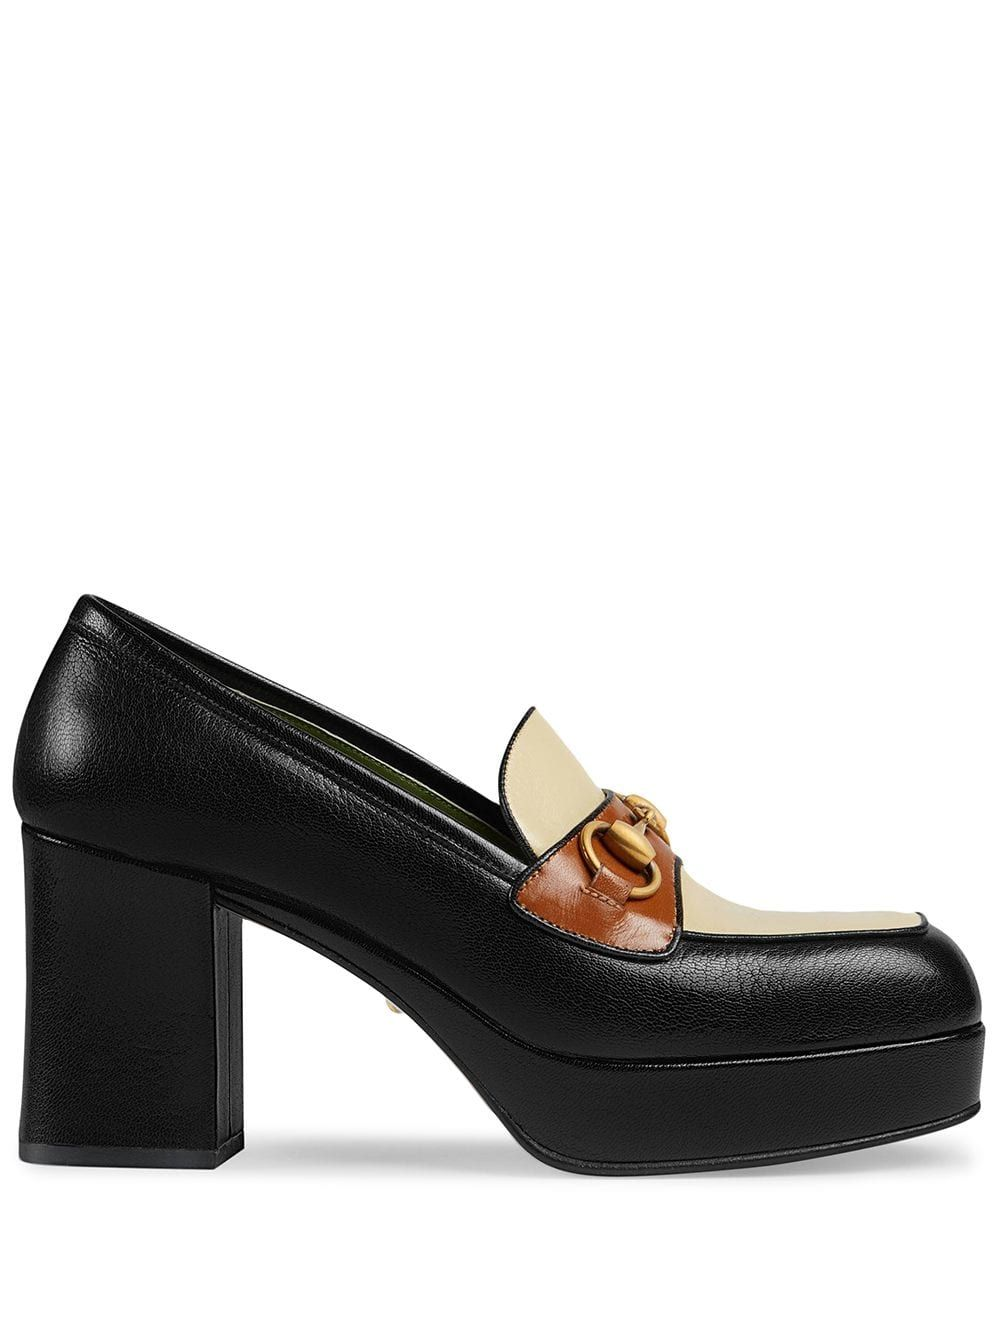 Gucci Leather Platform Loafer With Horsebit In Black